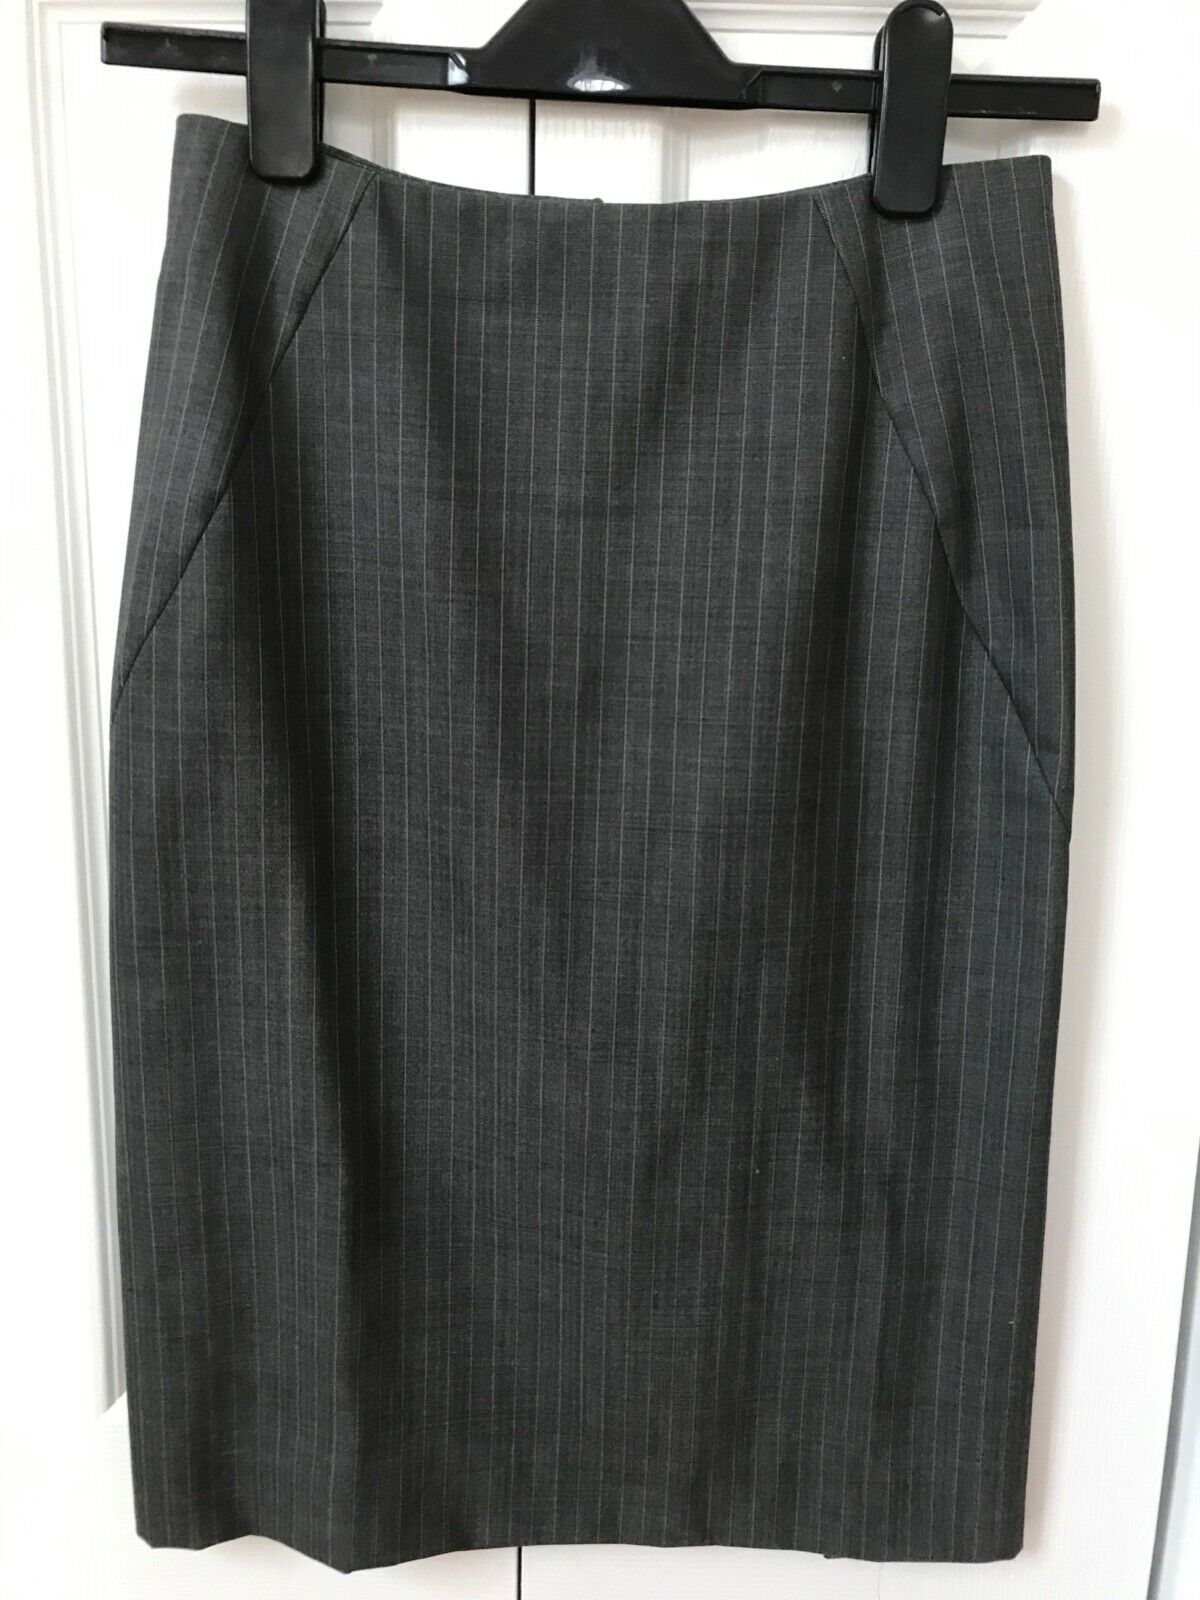 Theory grey skirt, size 0